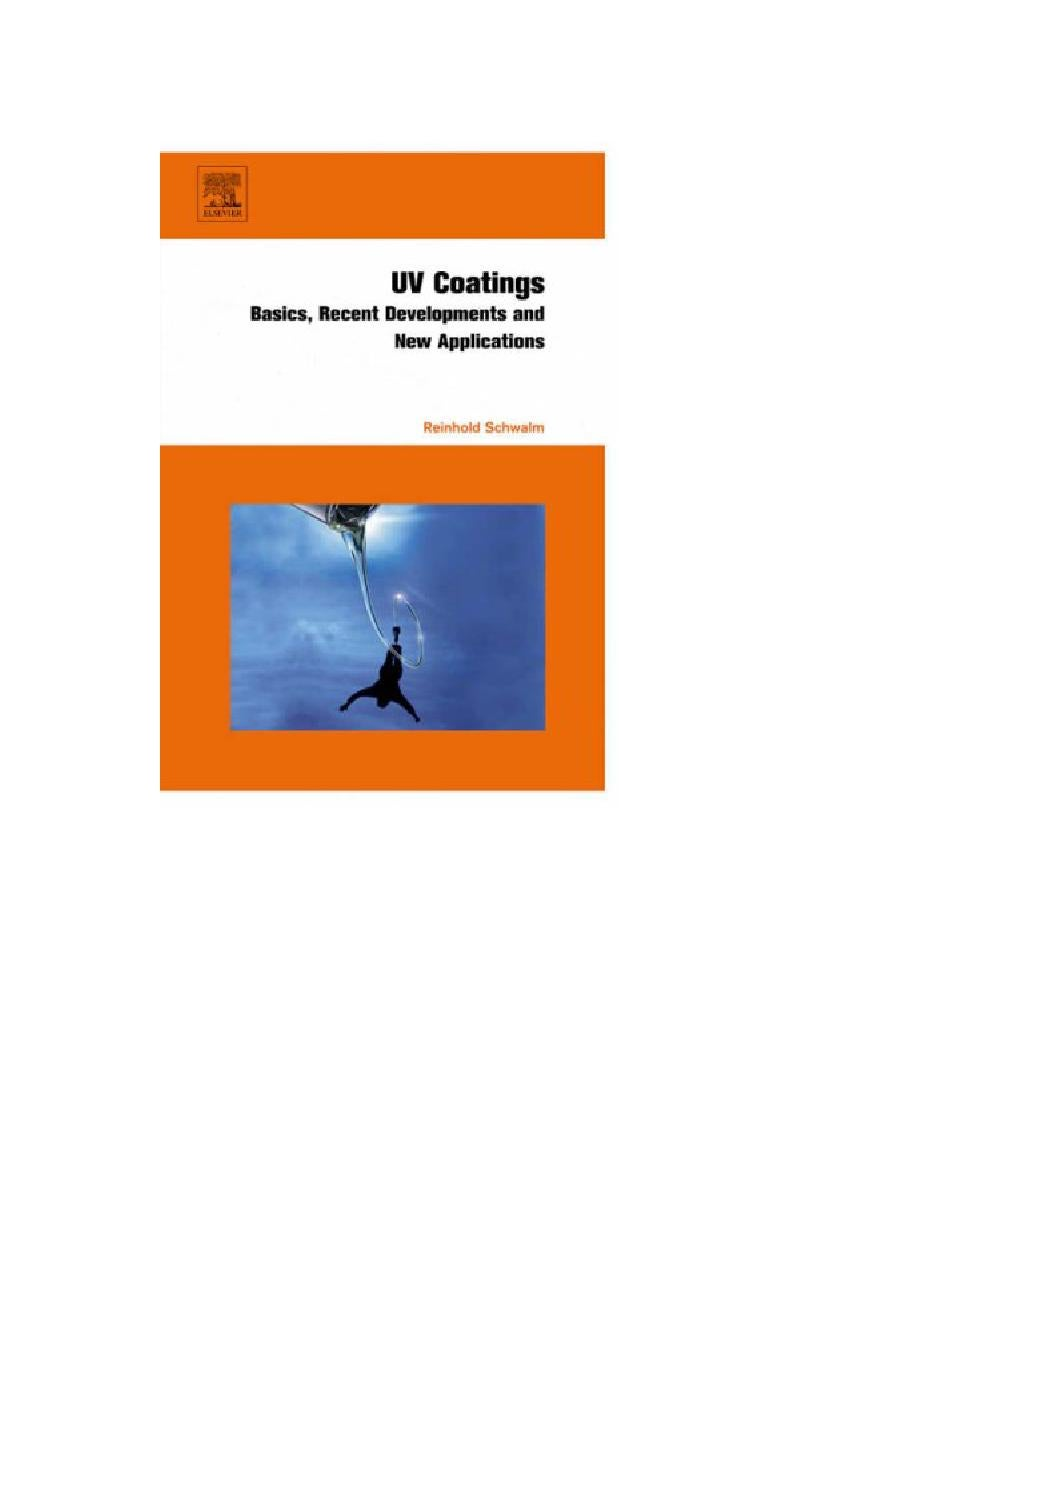 Uv Coatings Basics Recent Developments And New Applications By Ema Voltage Divider Calculator For Dc Circuits With Load At Globalspec Gladiola Valencia May Issuu